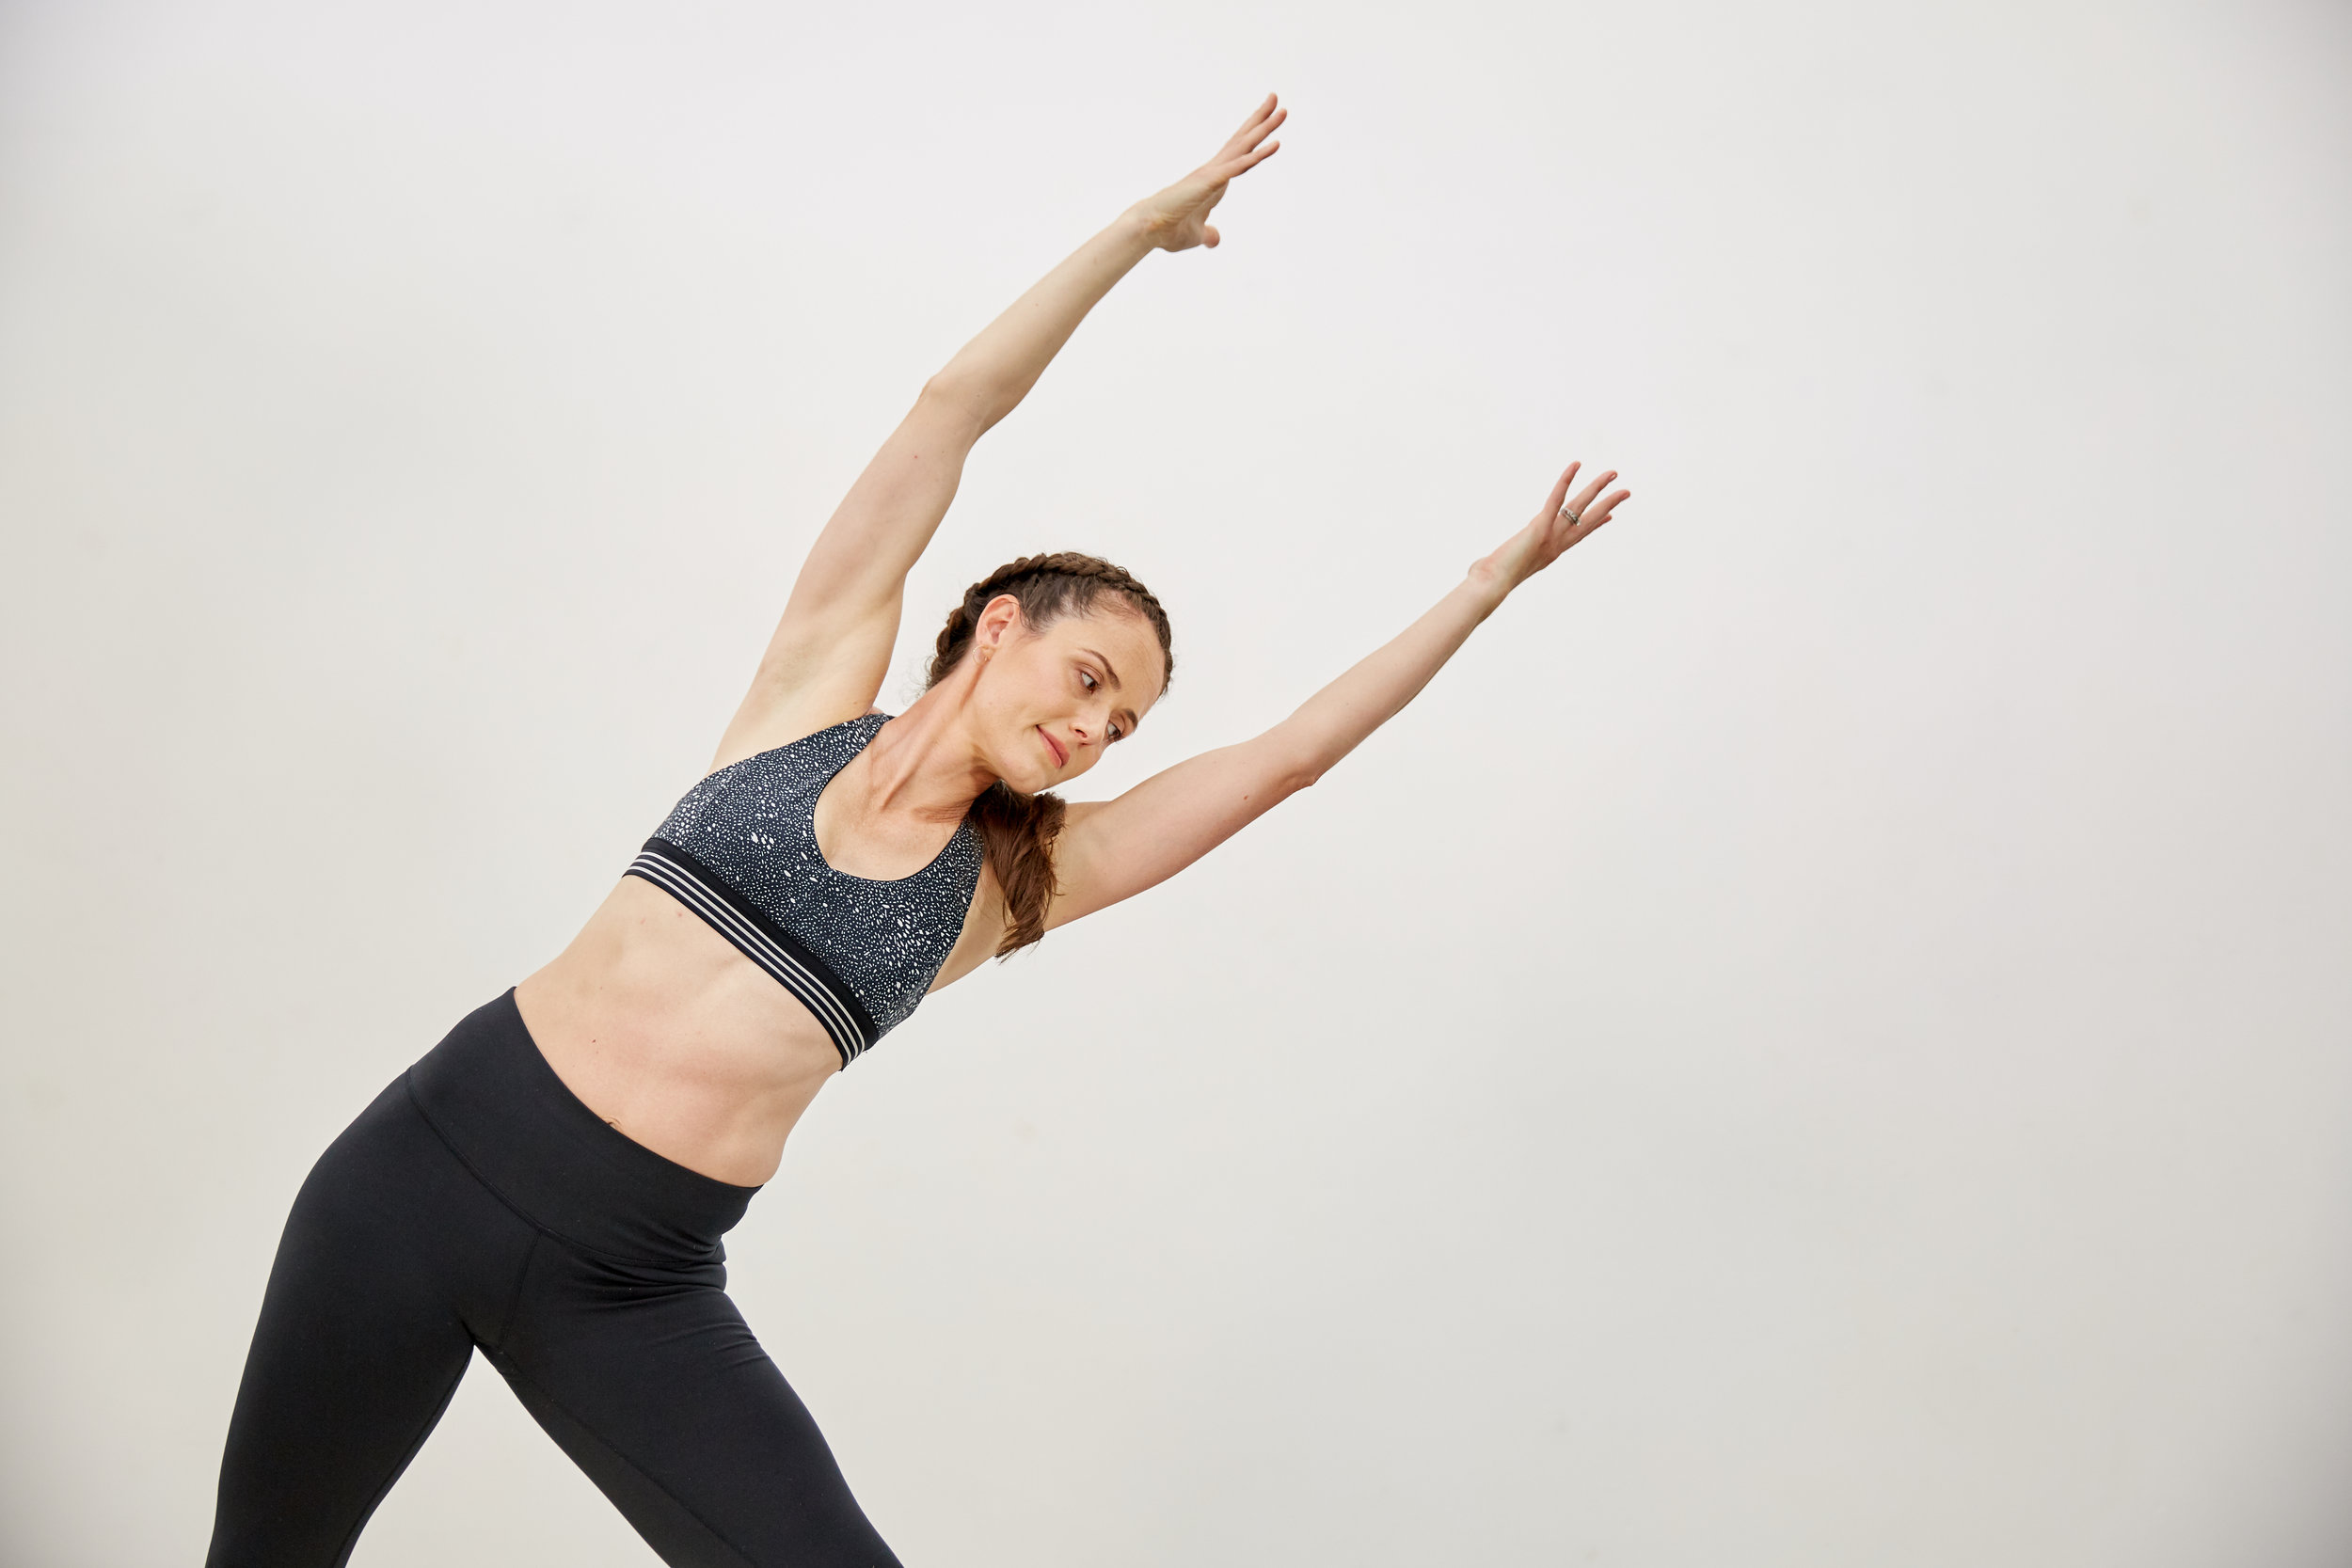 Jasyoga_new_core_0042.jpg